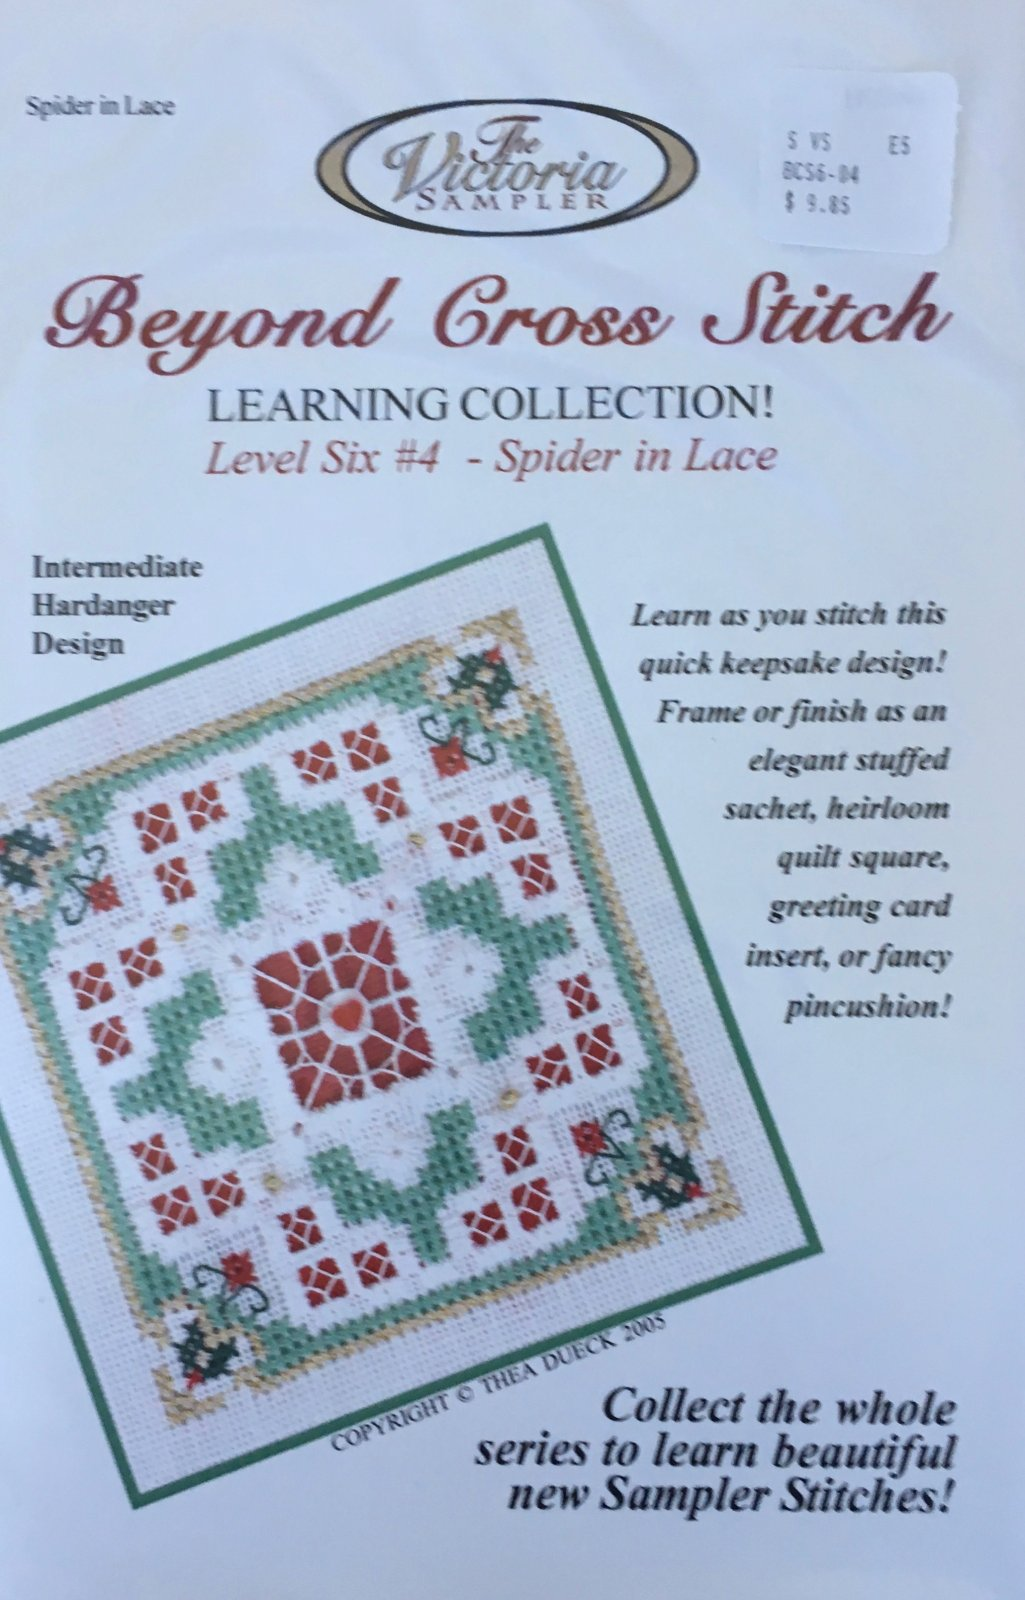 The Victoria Sampler: Christmas Cheer Level 6 - #4 Kit; Spider In Lace